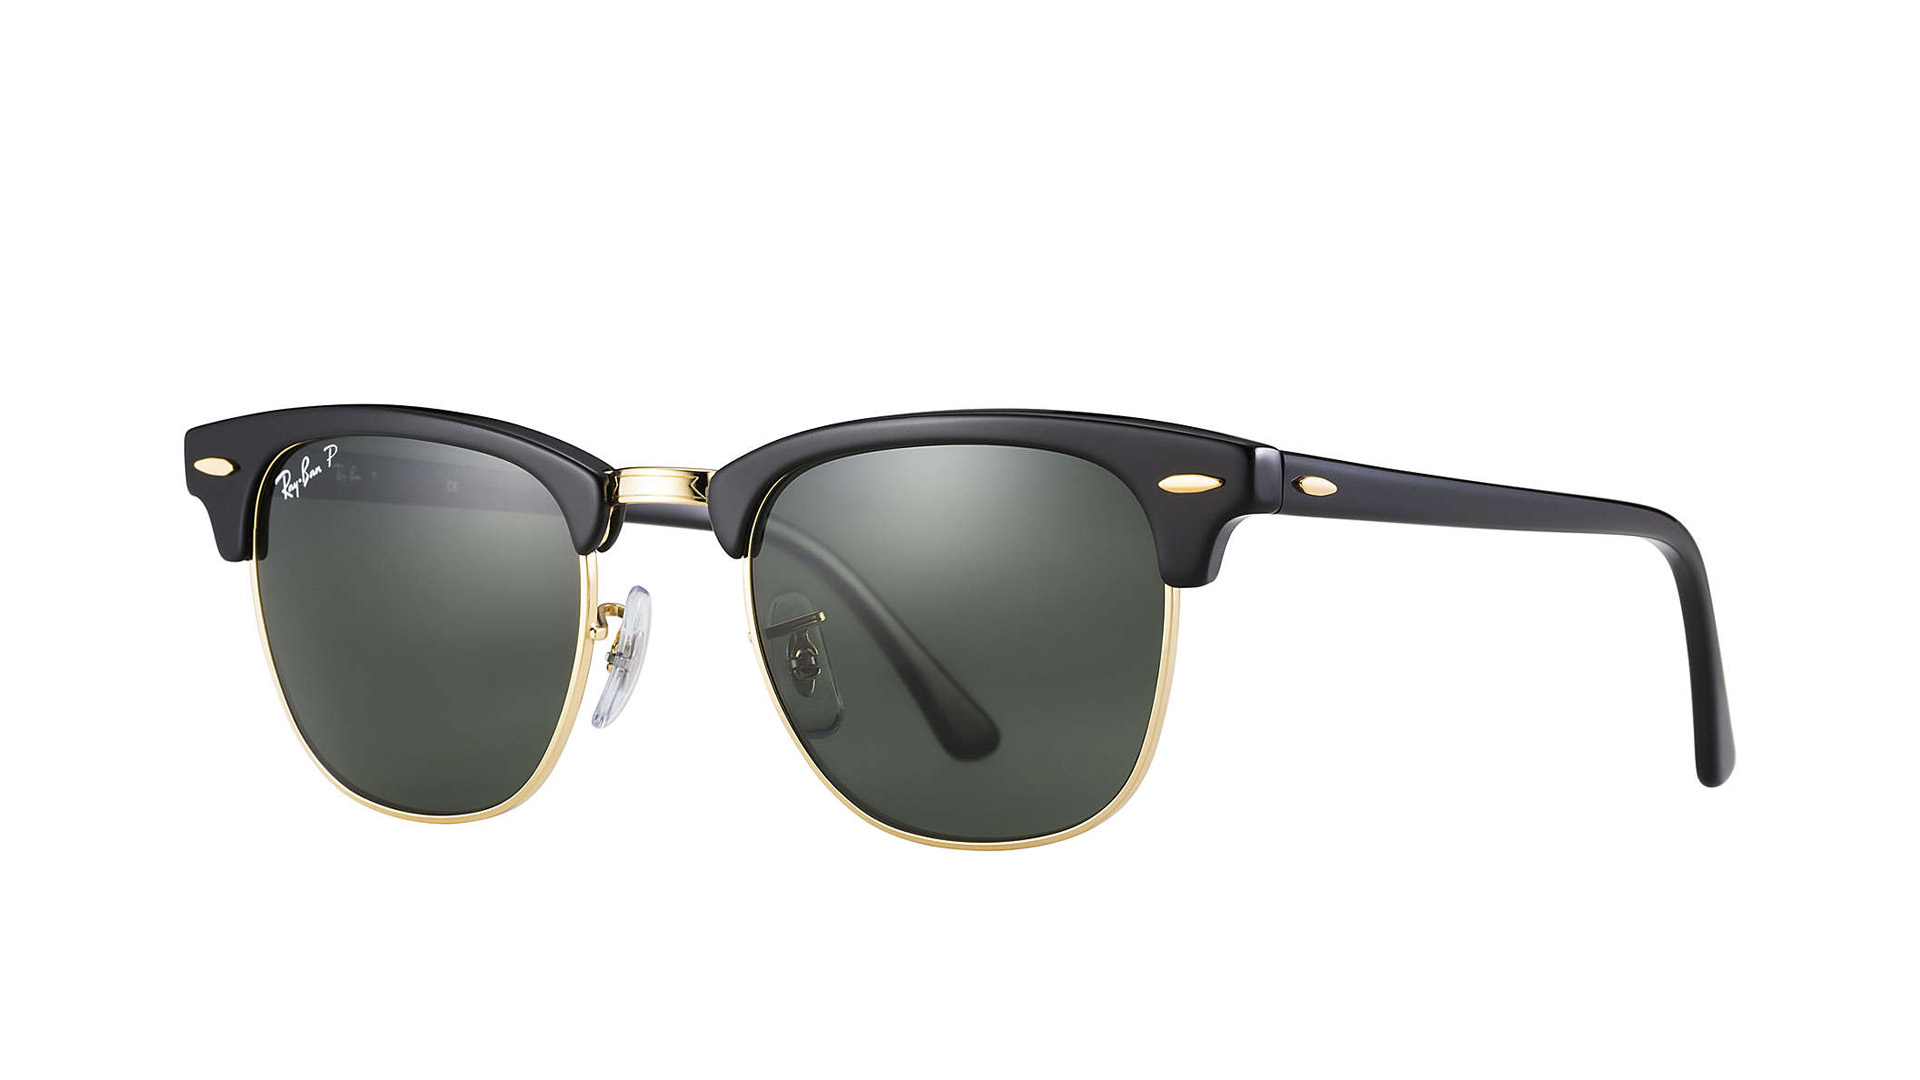 Purchase Clubmaster Classic Sunglasses Through Lemoney